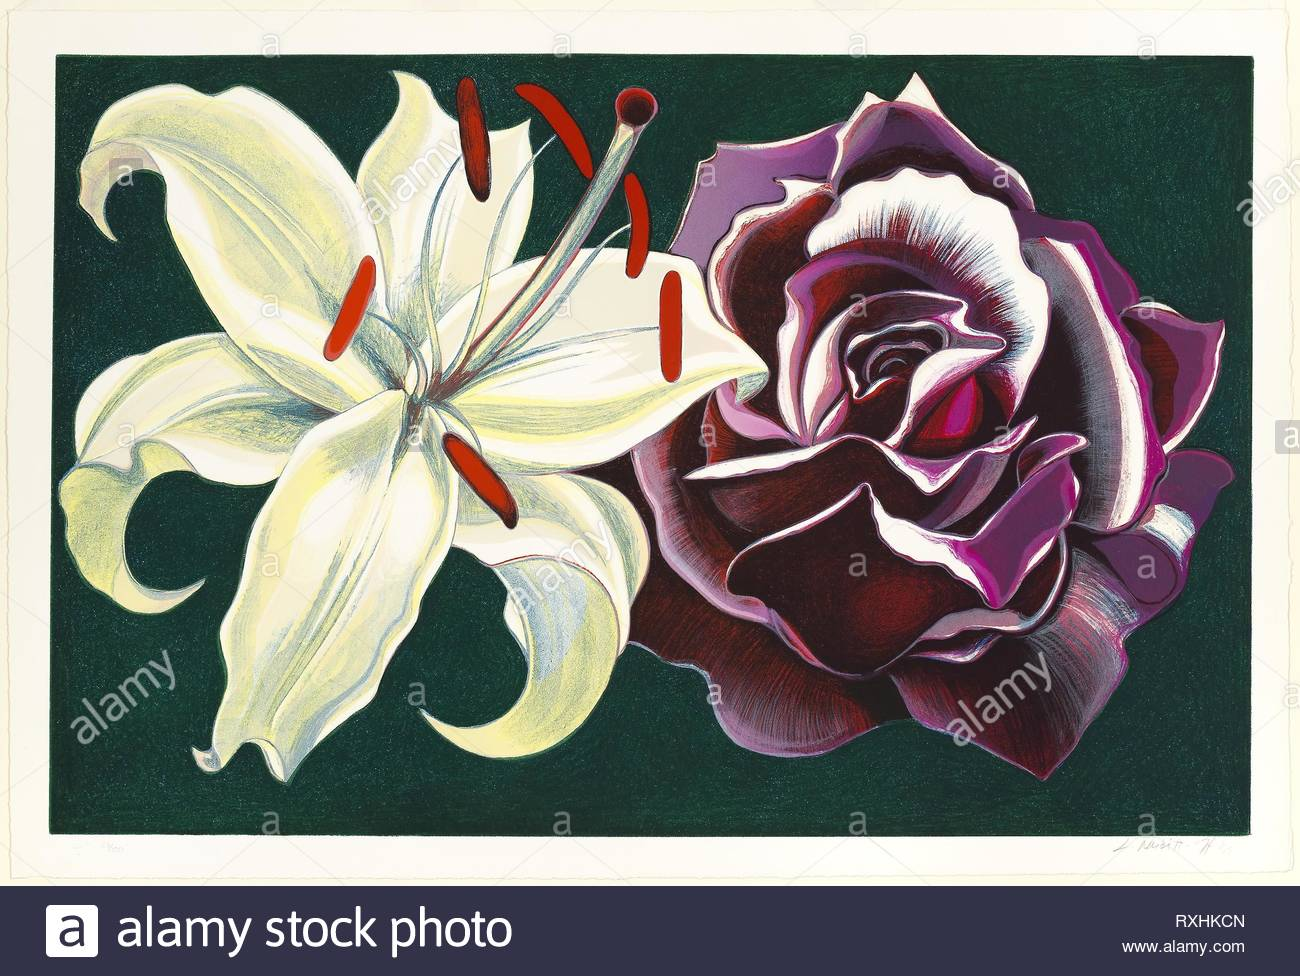 Lily and Rose. Lowell Nesbitt; American, 1933-1993. Date: 1974. Dimensions: 553 x 848 mm (image); 615 x 905 mm (sheet). Lithograph on white wove paper. Origin: United States. Museum: The Chicago Art Institute. - Stock Image